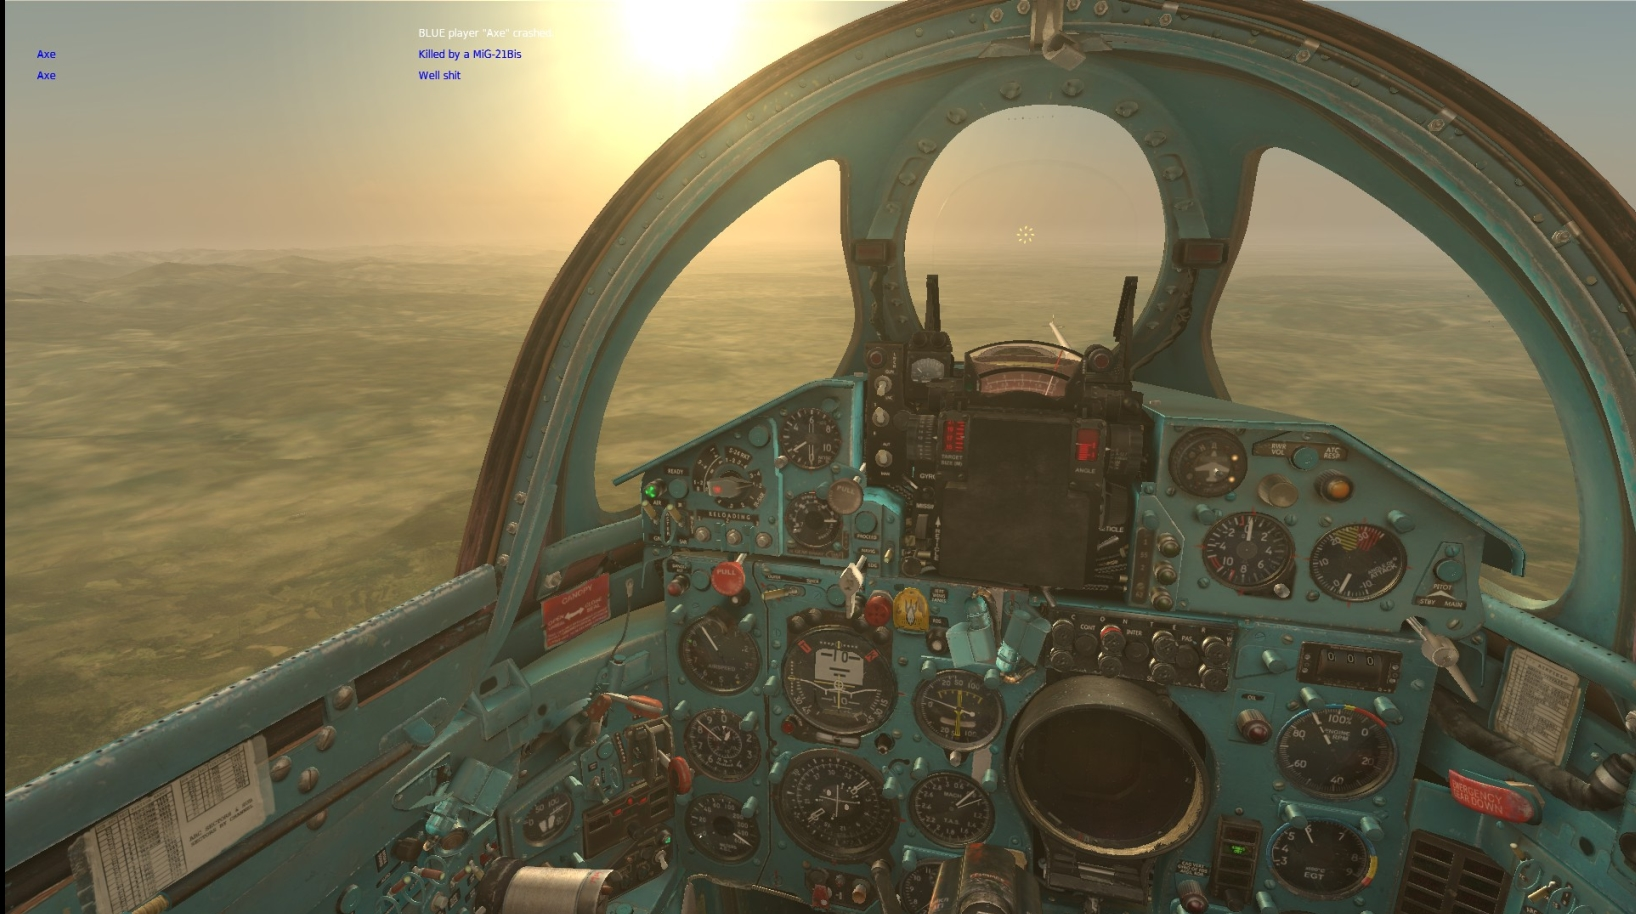 I dont like the Mirage2000 cockpit textures  - SimHQ Forums